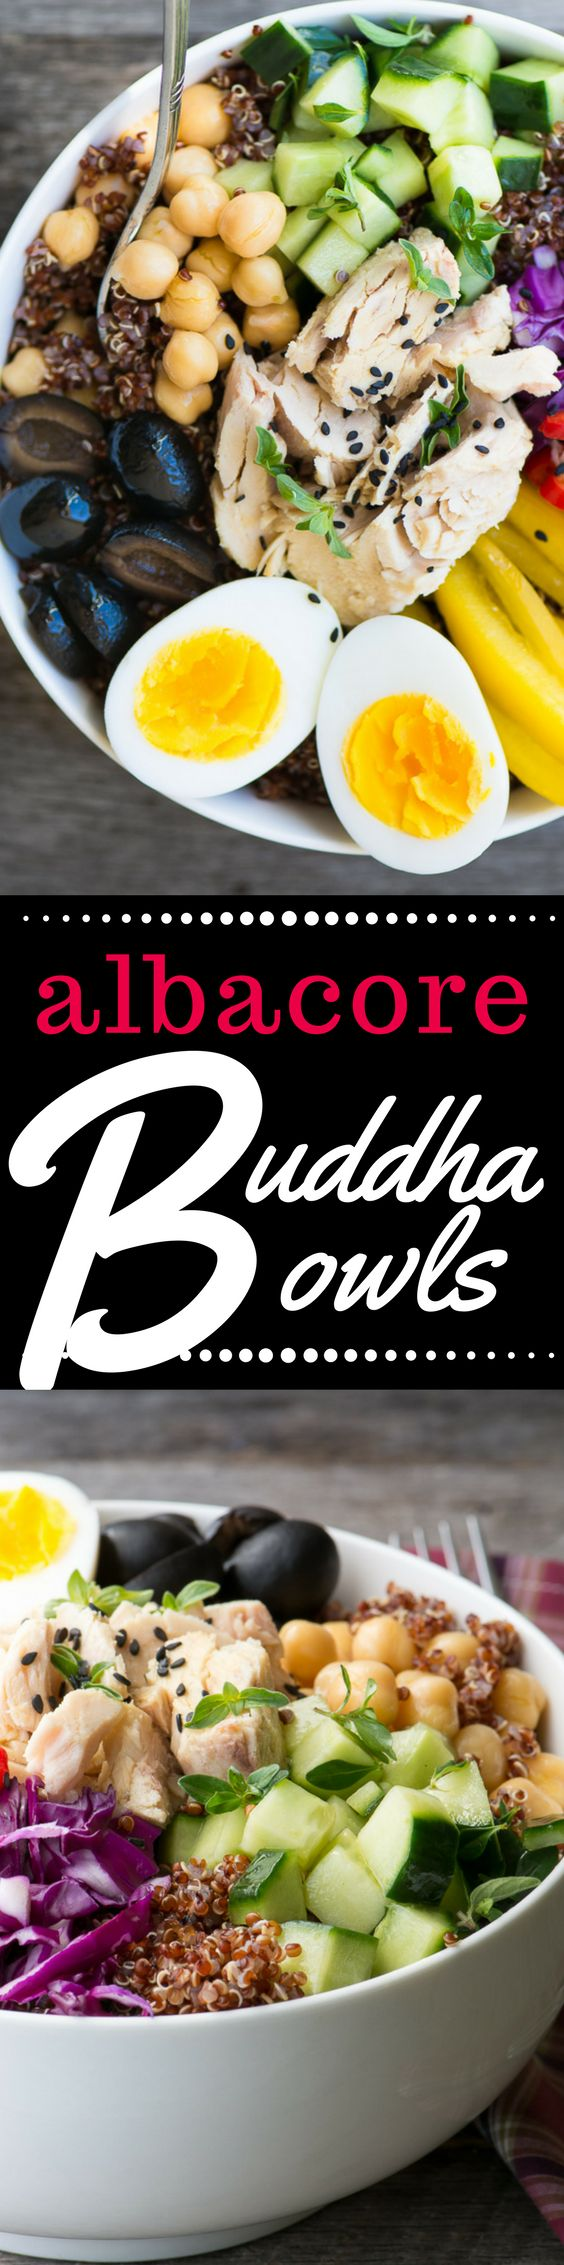 #sponsored ~ Albacore Buddha Bowls are quick, easy, high protein meals that can be made from…